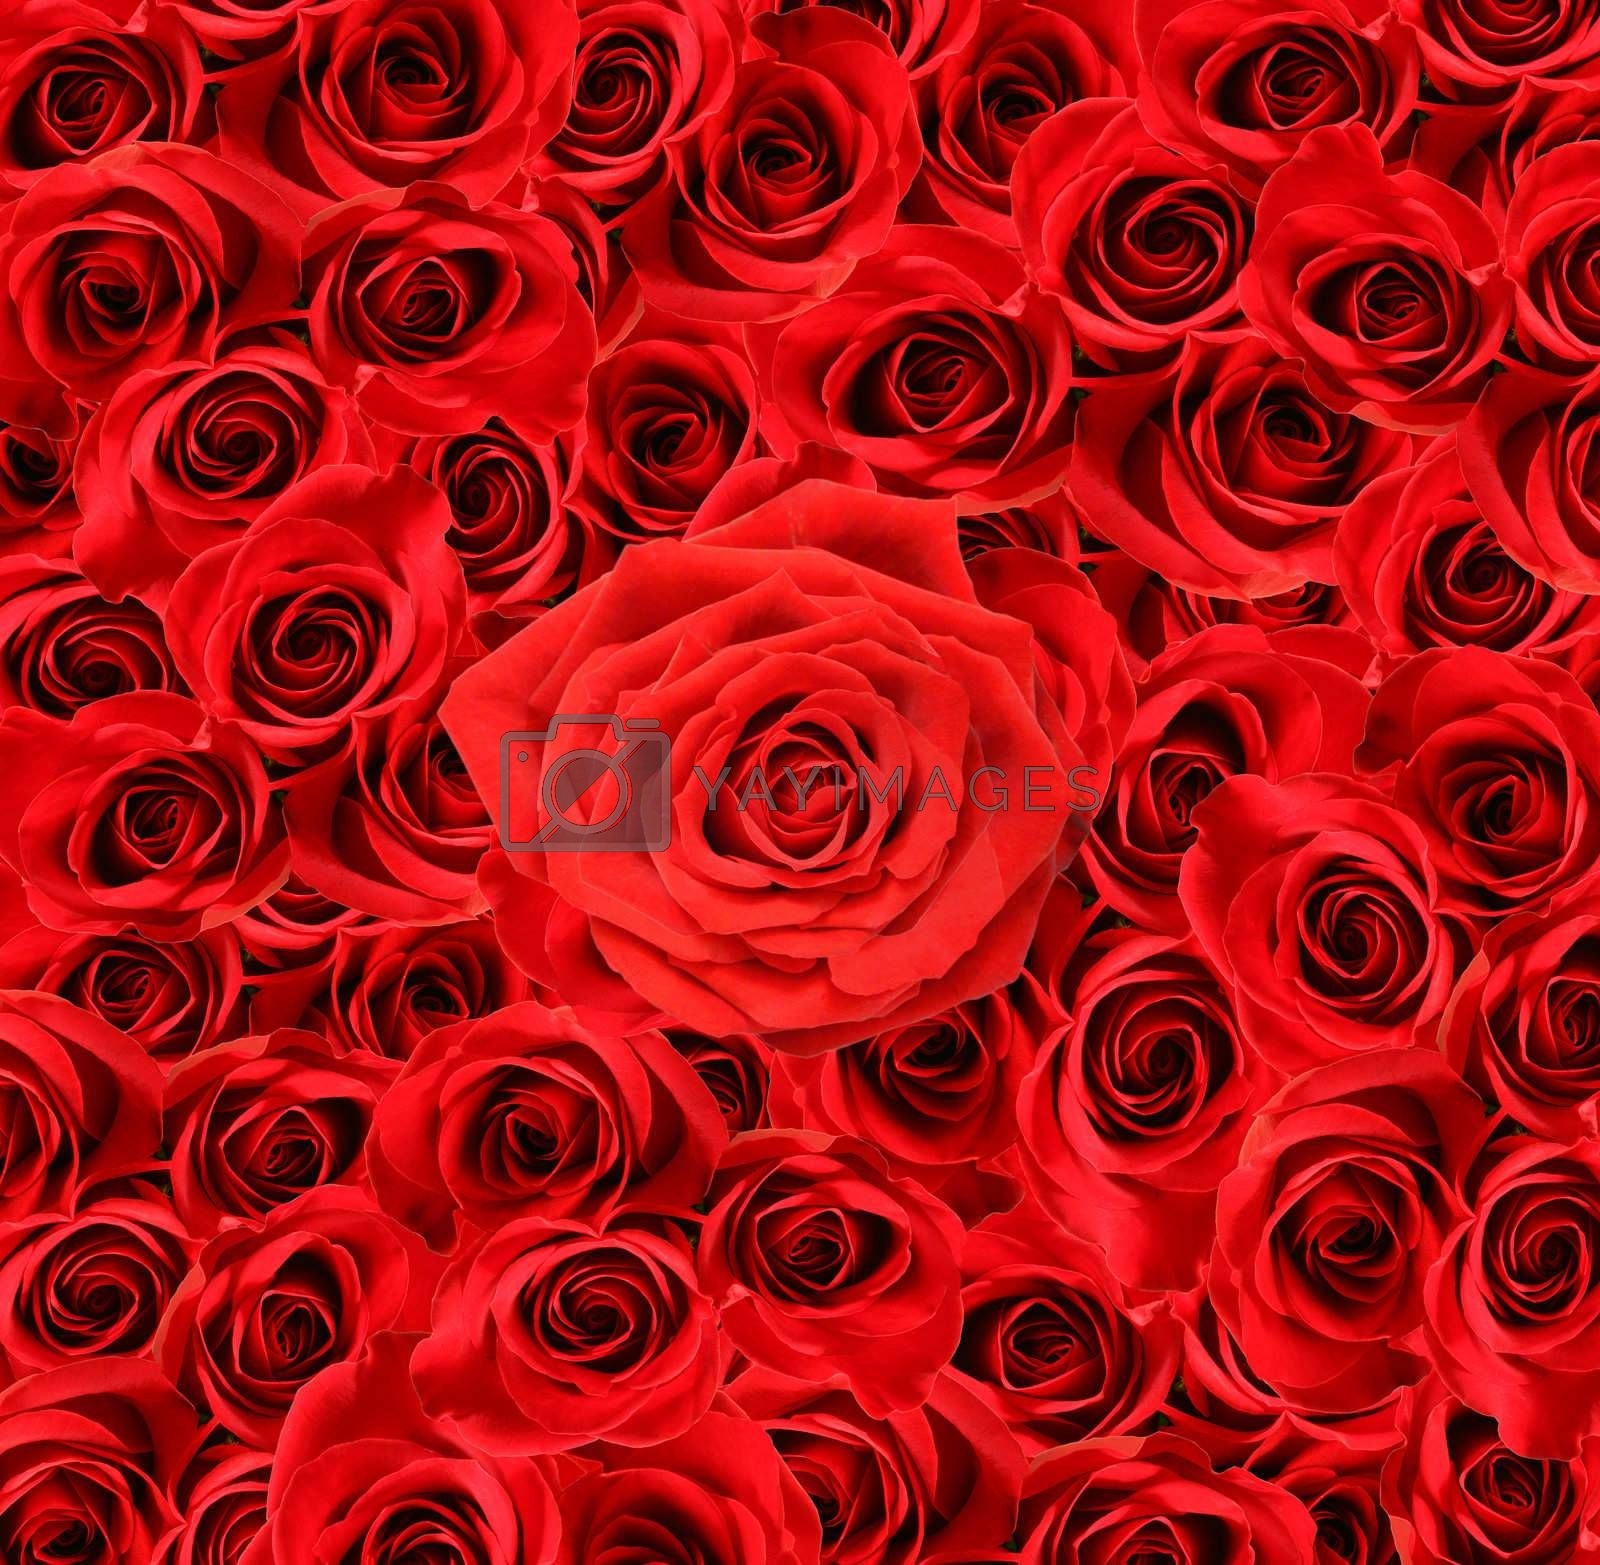 Over view of large red roses for special occasions